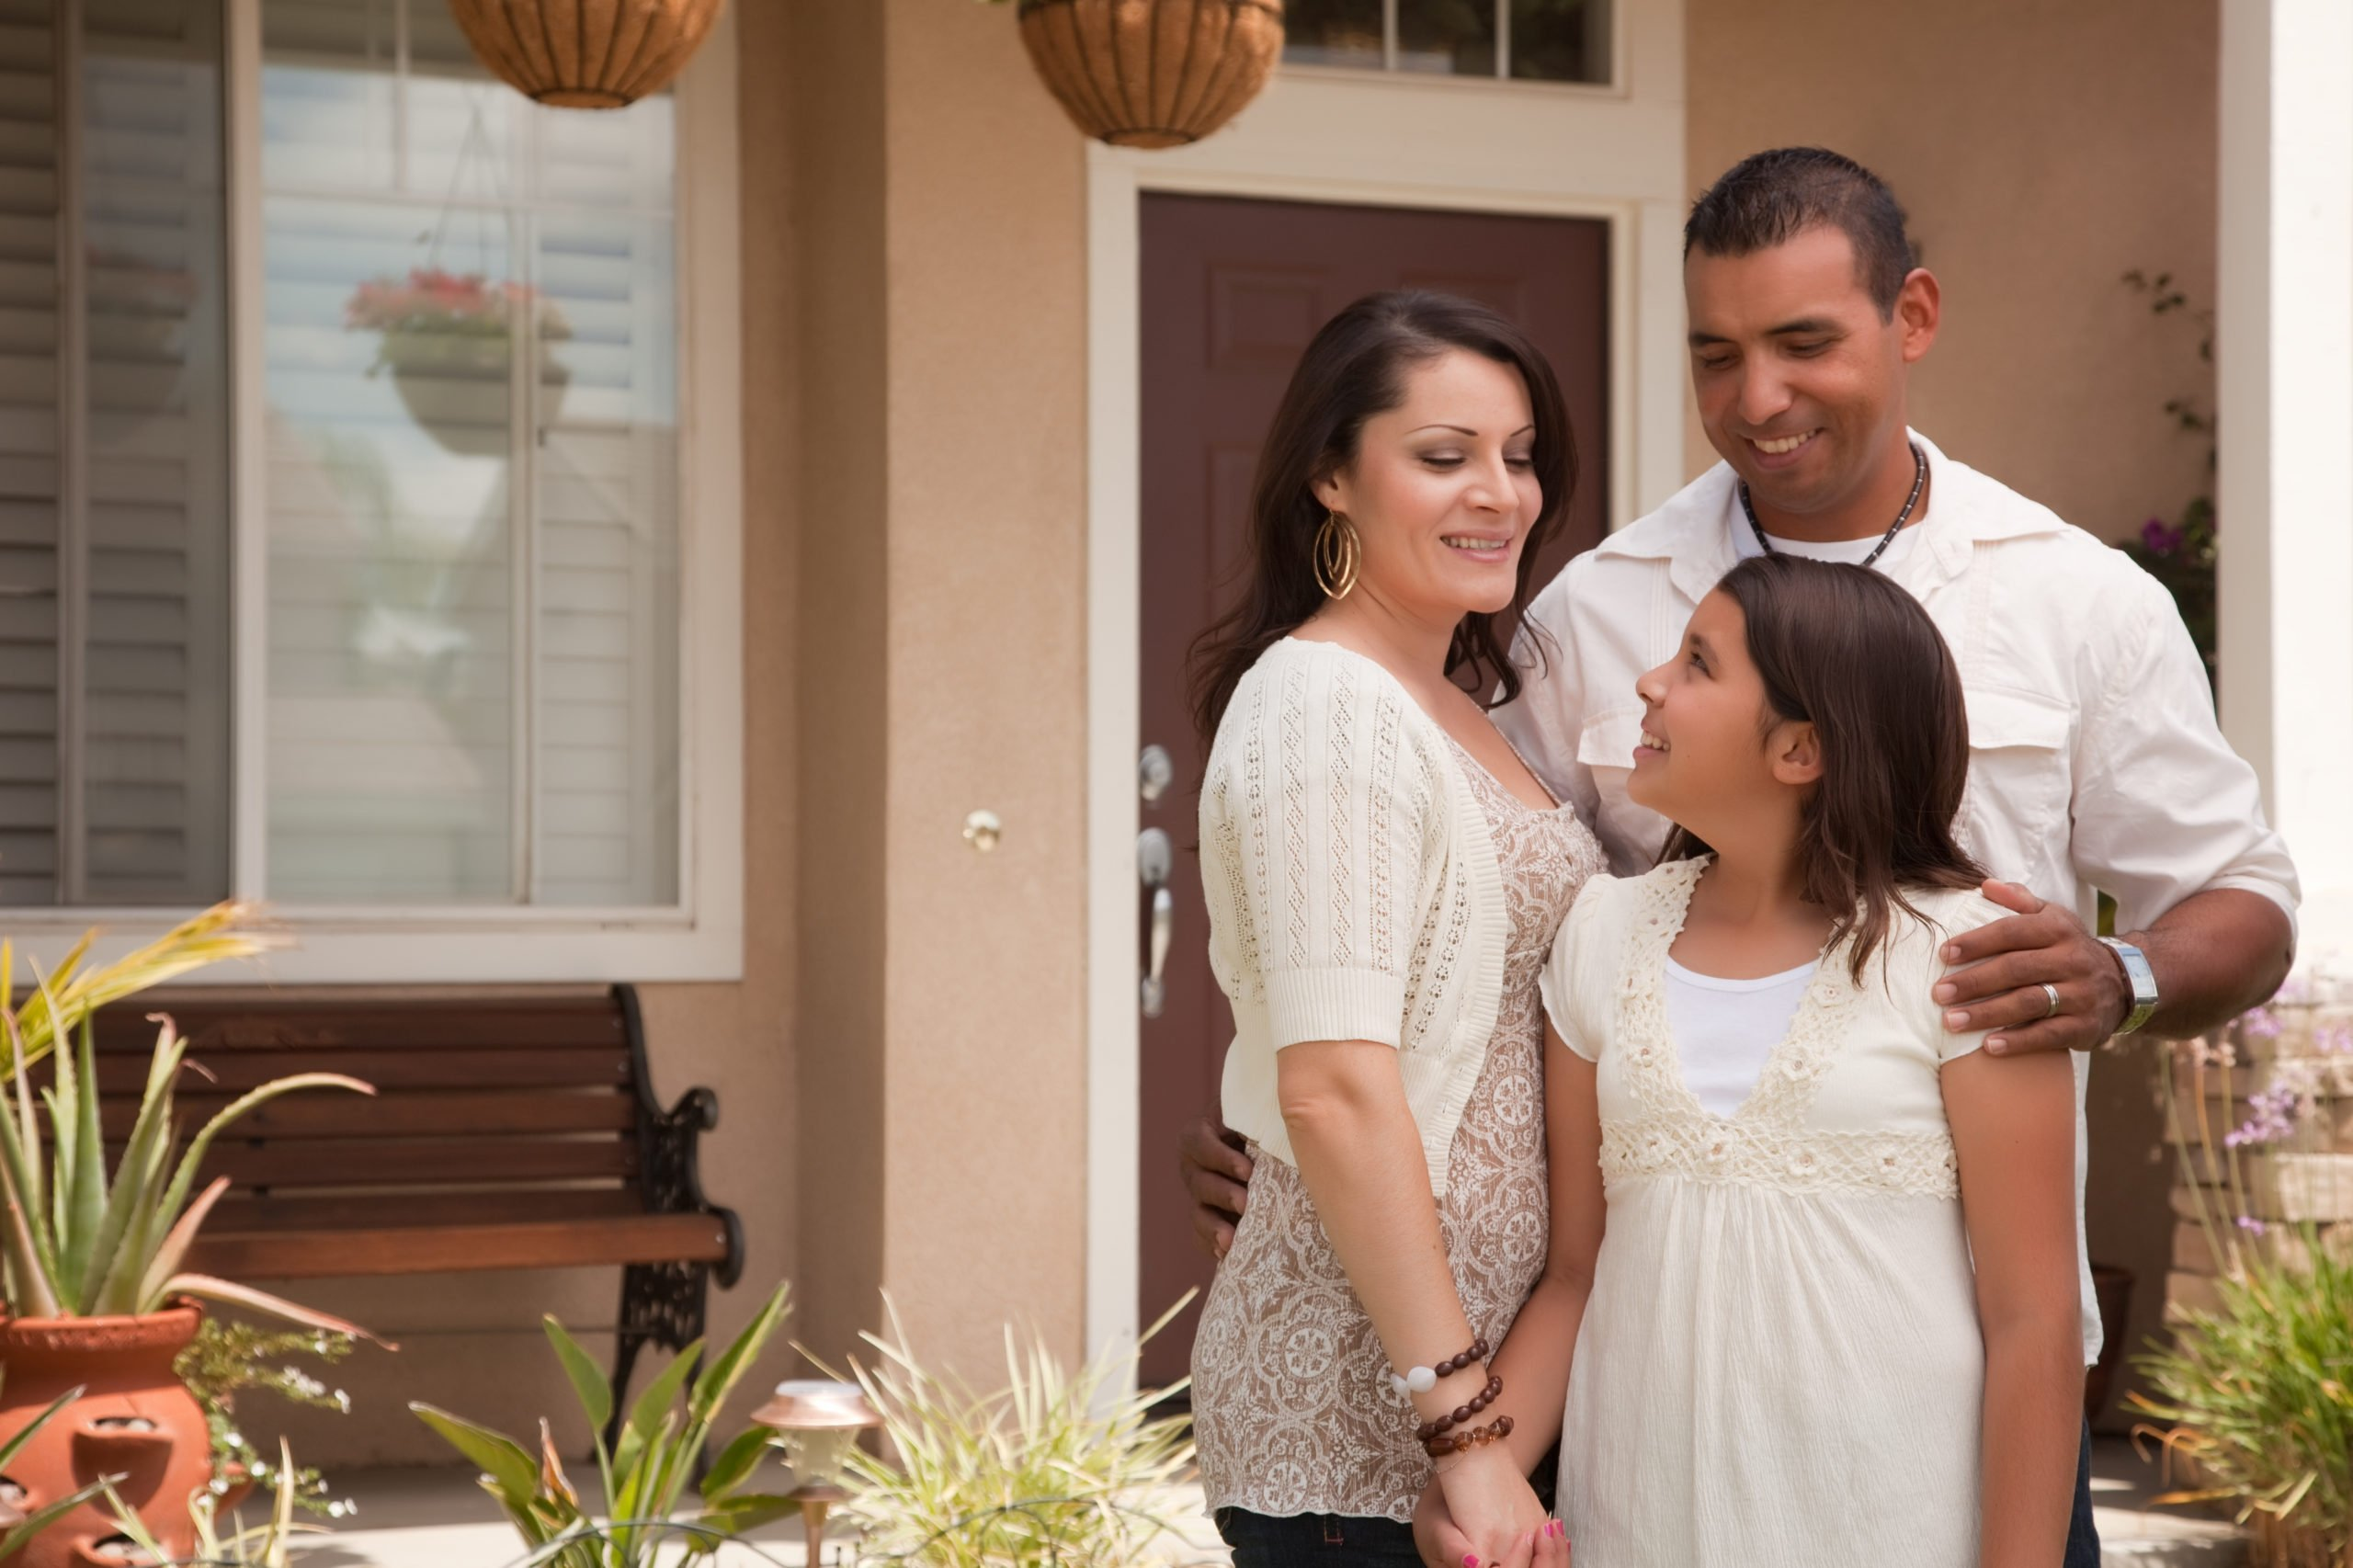 Hispanic family in front of home